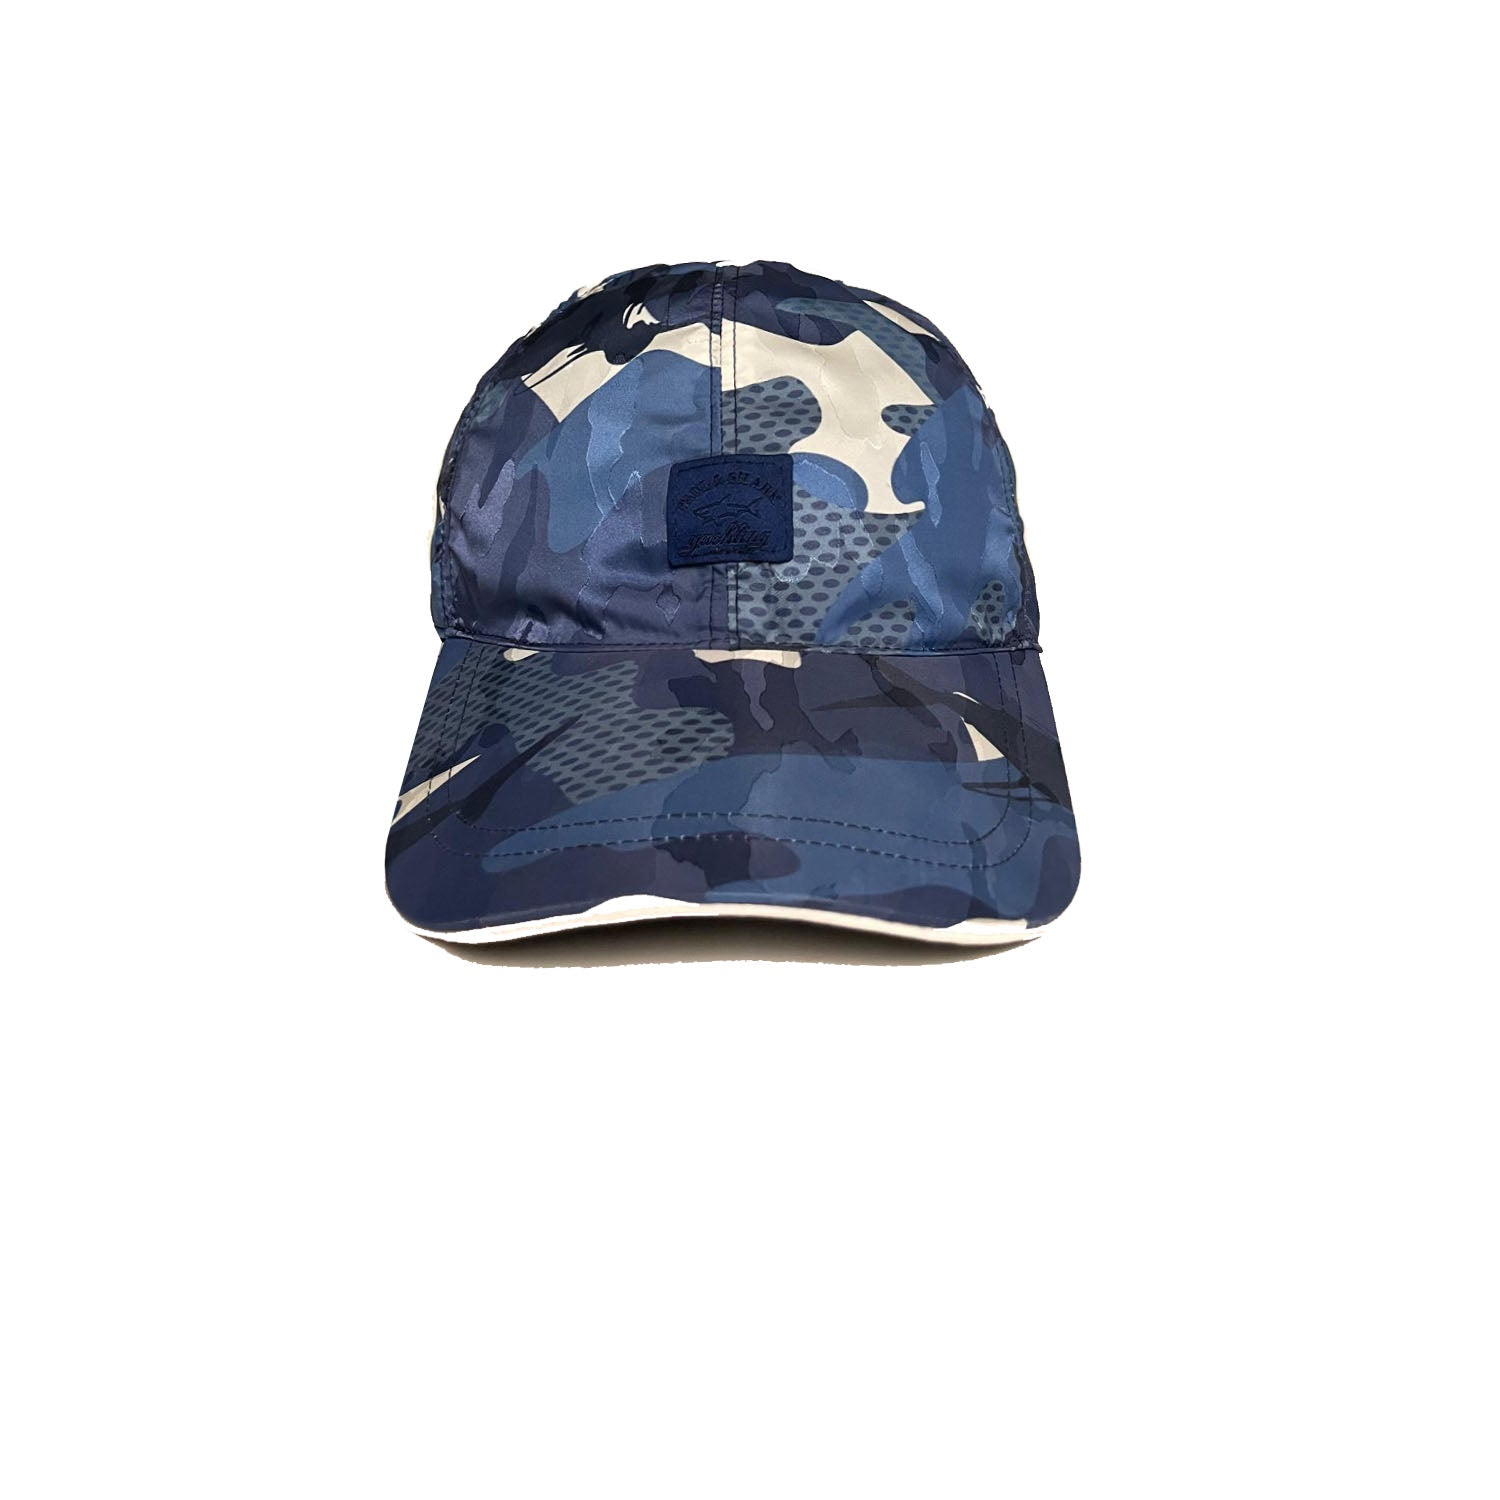 Paul & Shark Camo Printed Baseball Cap